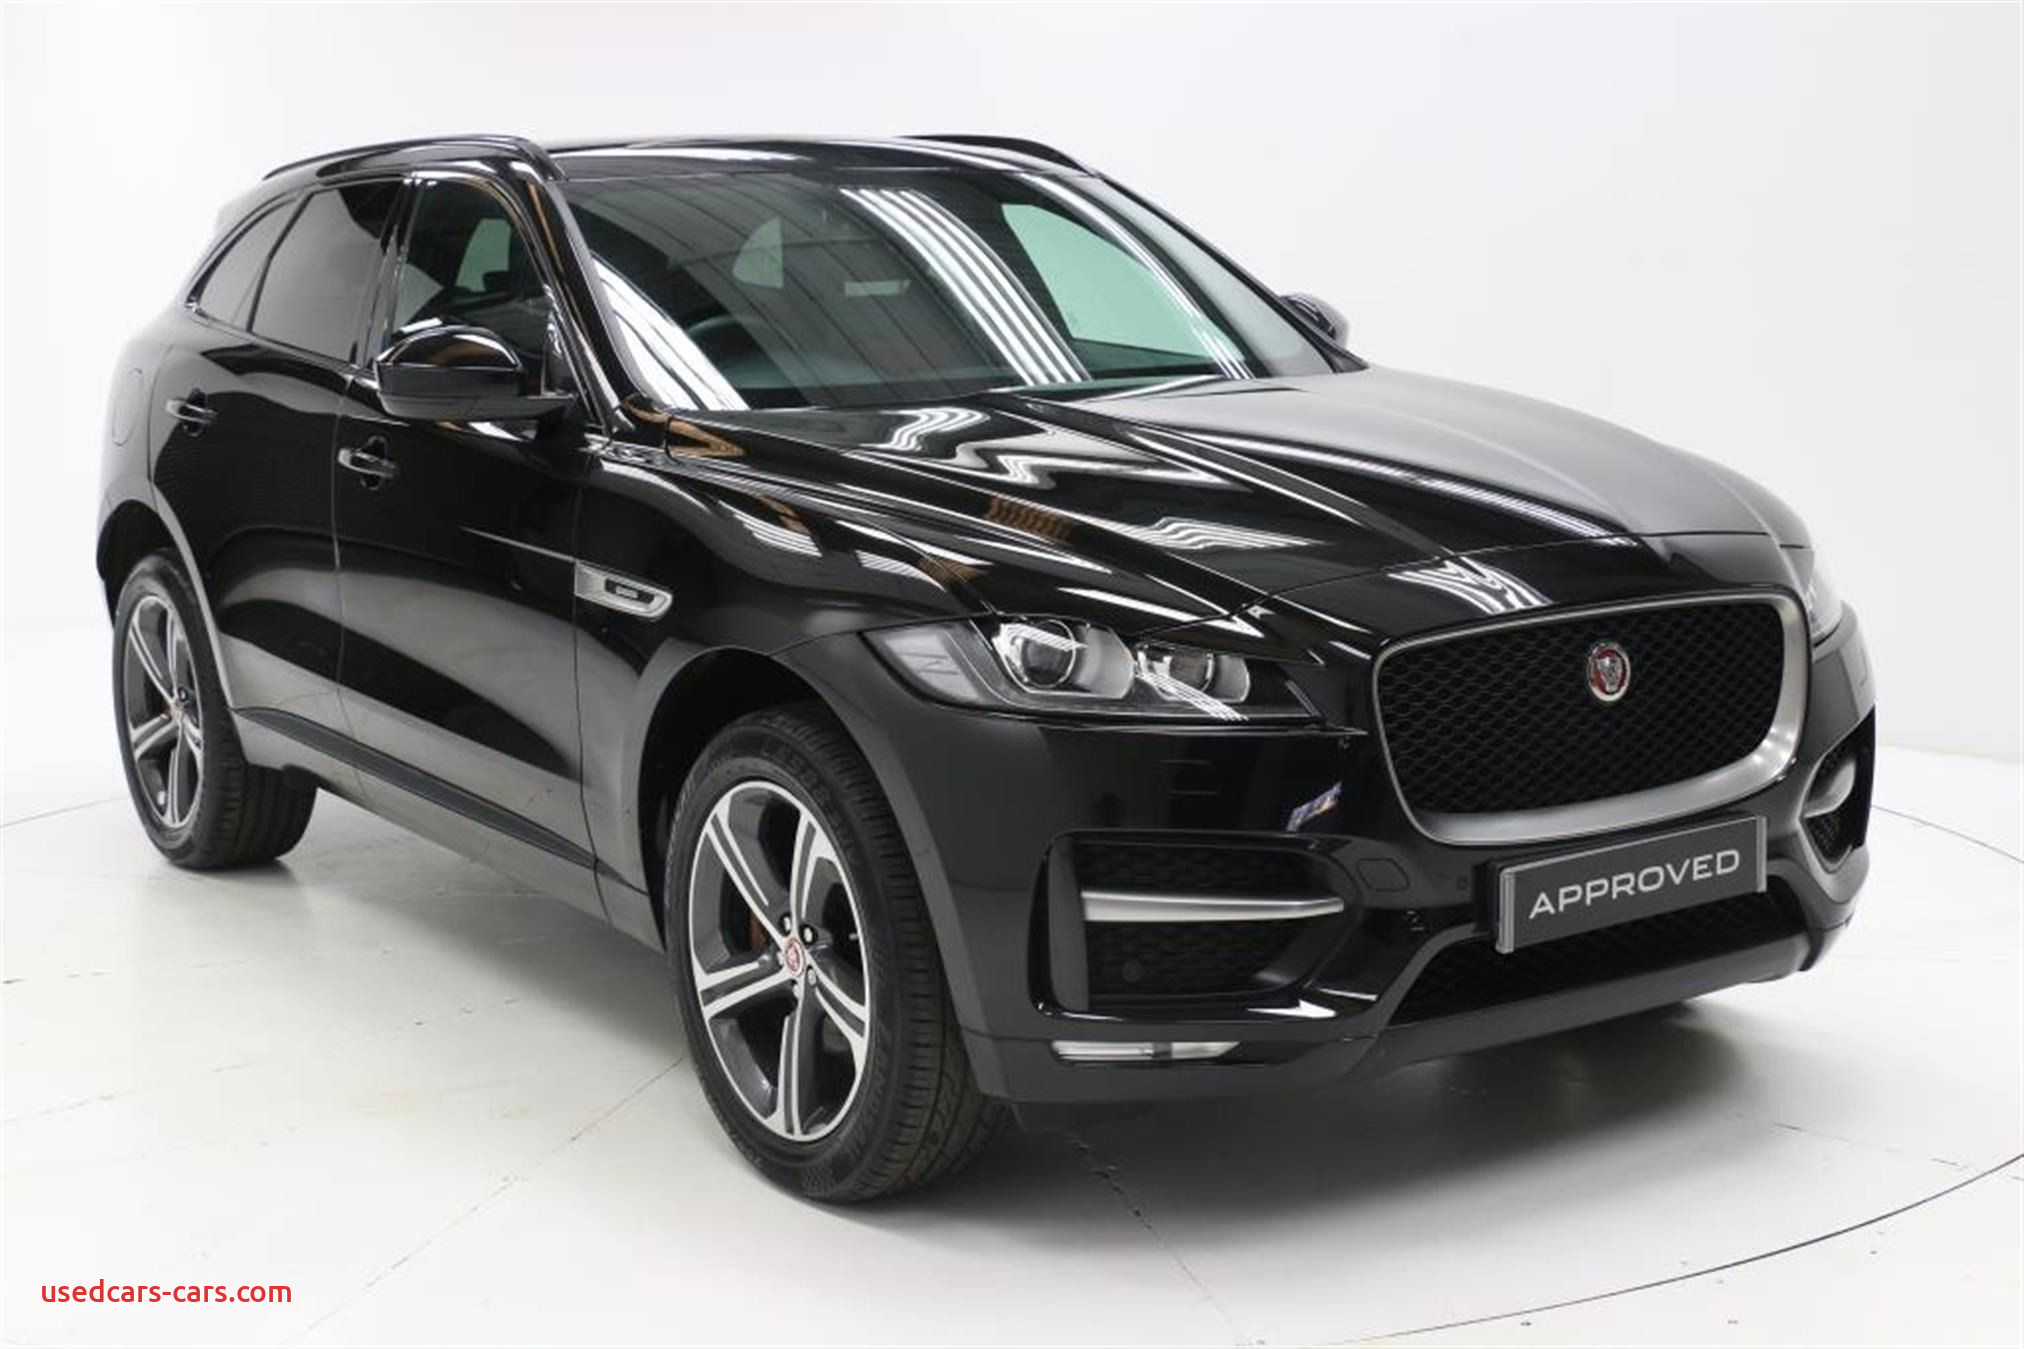 Used Cars for Sale Va Best Of Used F Pace Jaguar 2 0d R Sport 5dr Auto Awd 2018 In 2020